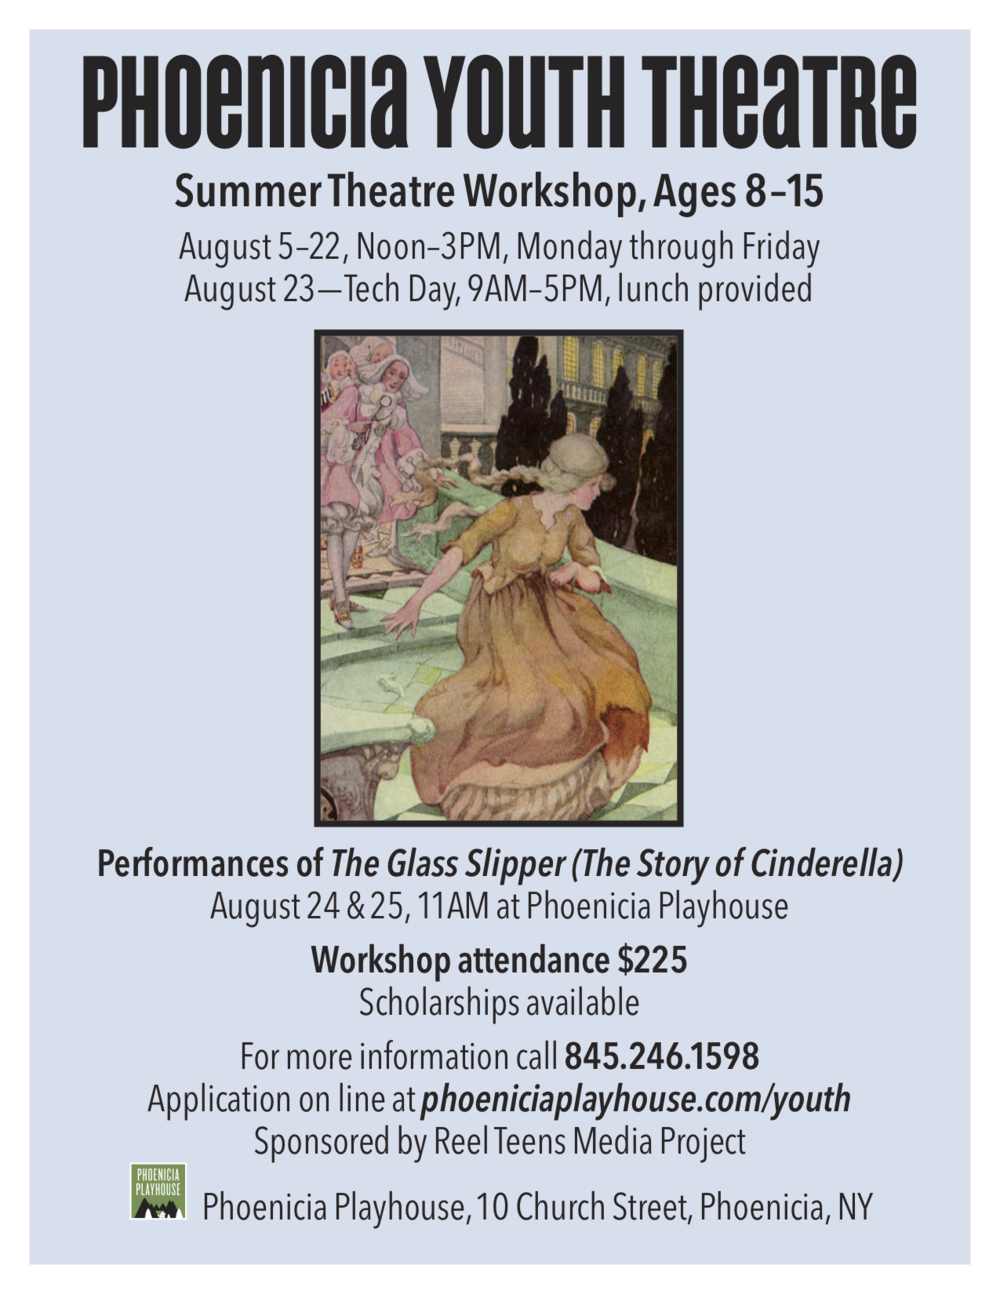 5188-Phoenicia Youth Theatre flyer-r1.png